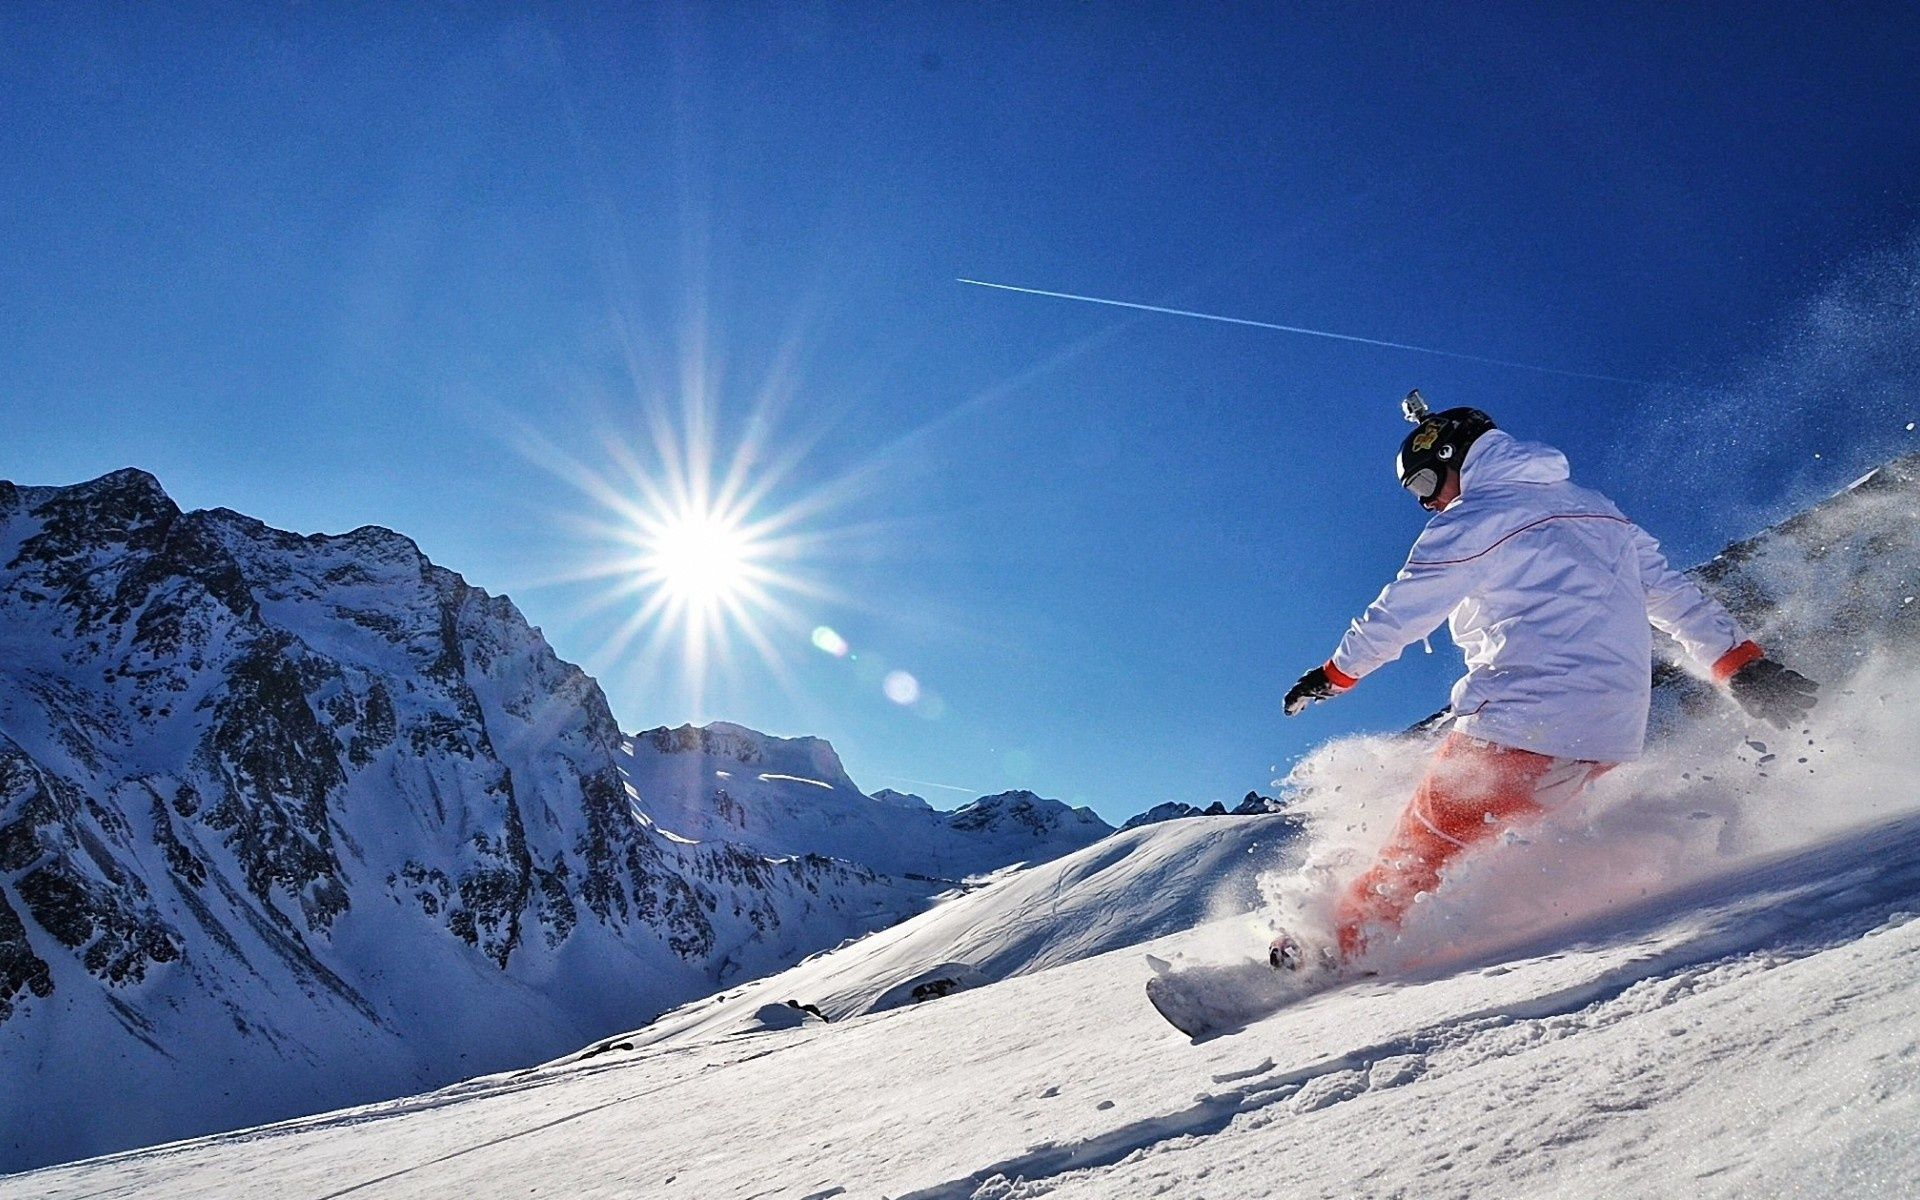 Sport Snowboarding Hd Photography Wallpaper Snowboarding